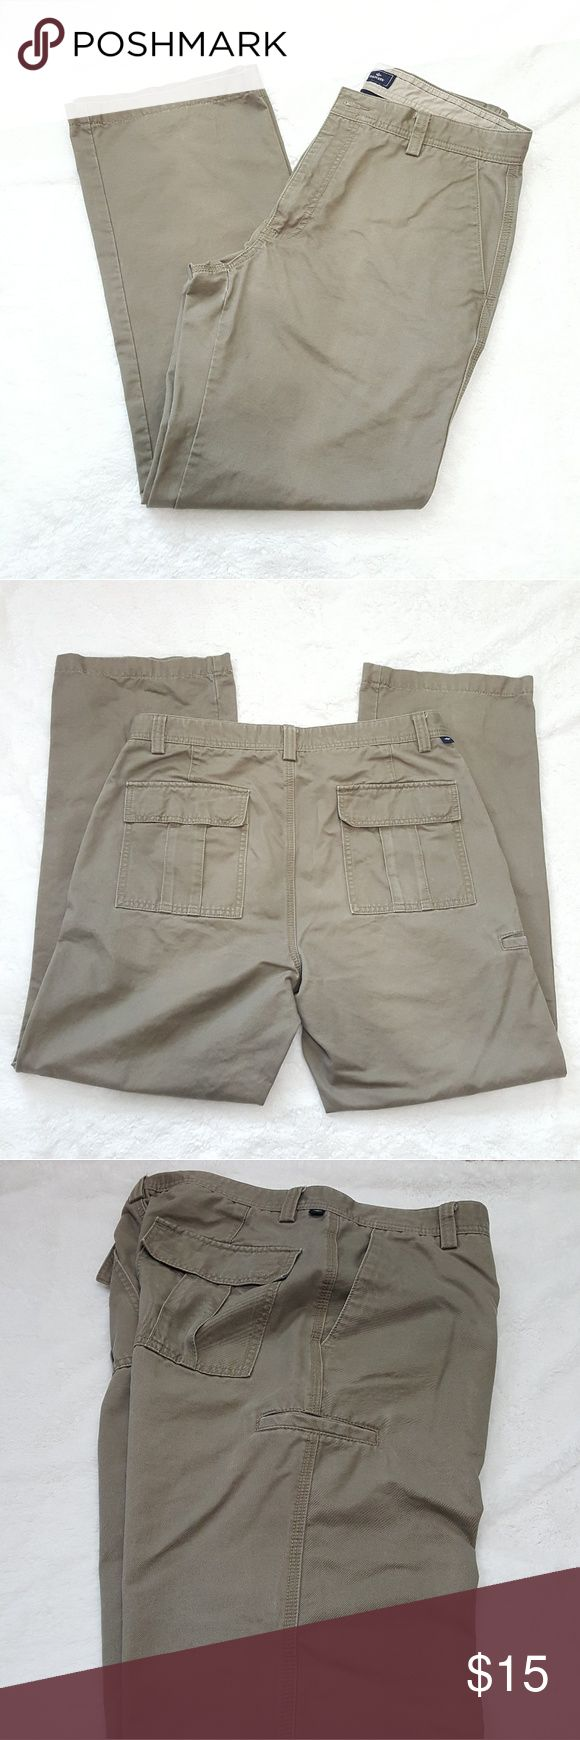 Dockers Men's Chino Pants These are in excellent used condition with no tears or rips.  They have a lot of life left in them.  They have a side pocket on the right leg.  Size is in last photo. 34 waist x32 inseam. Dockers Pants Chinos & Khakis